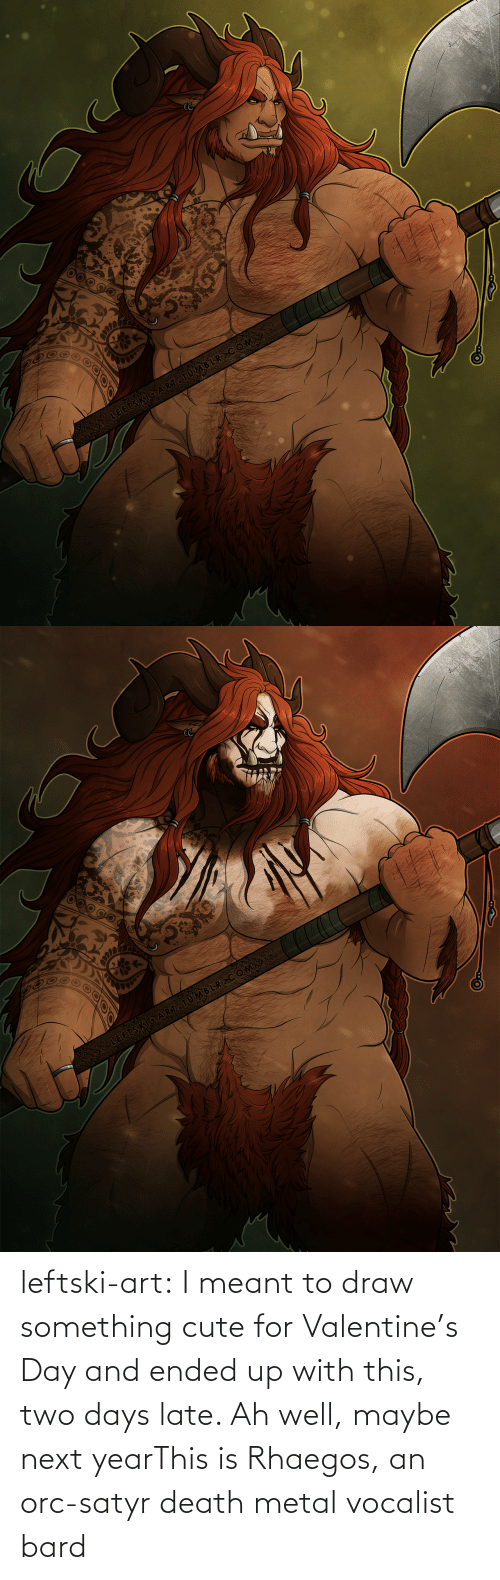 Valentine's Day: leftski-art:  I meant to draw something cute for Valentine's Day and ended up with this, two days late. Ah well, maybe next yearThis is Rhaegos, an orc-satyr death metal vocalist bard